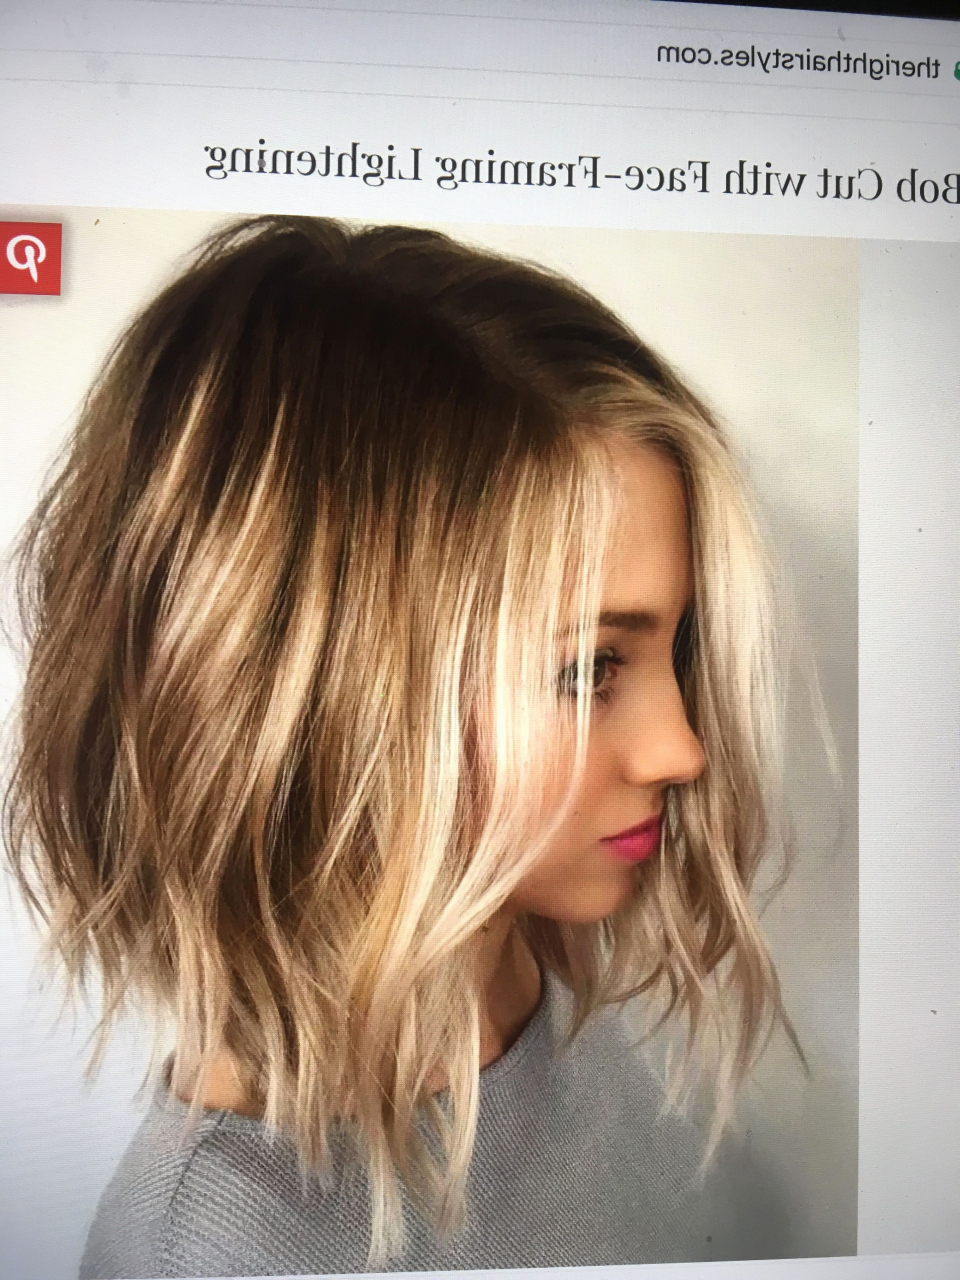 2019 Hippie Hairstyles For Short Hair Awesome Medium Length Within Hippie Short Hairstyles (View 20 of 25)